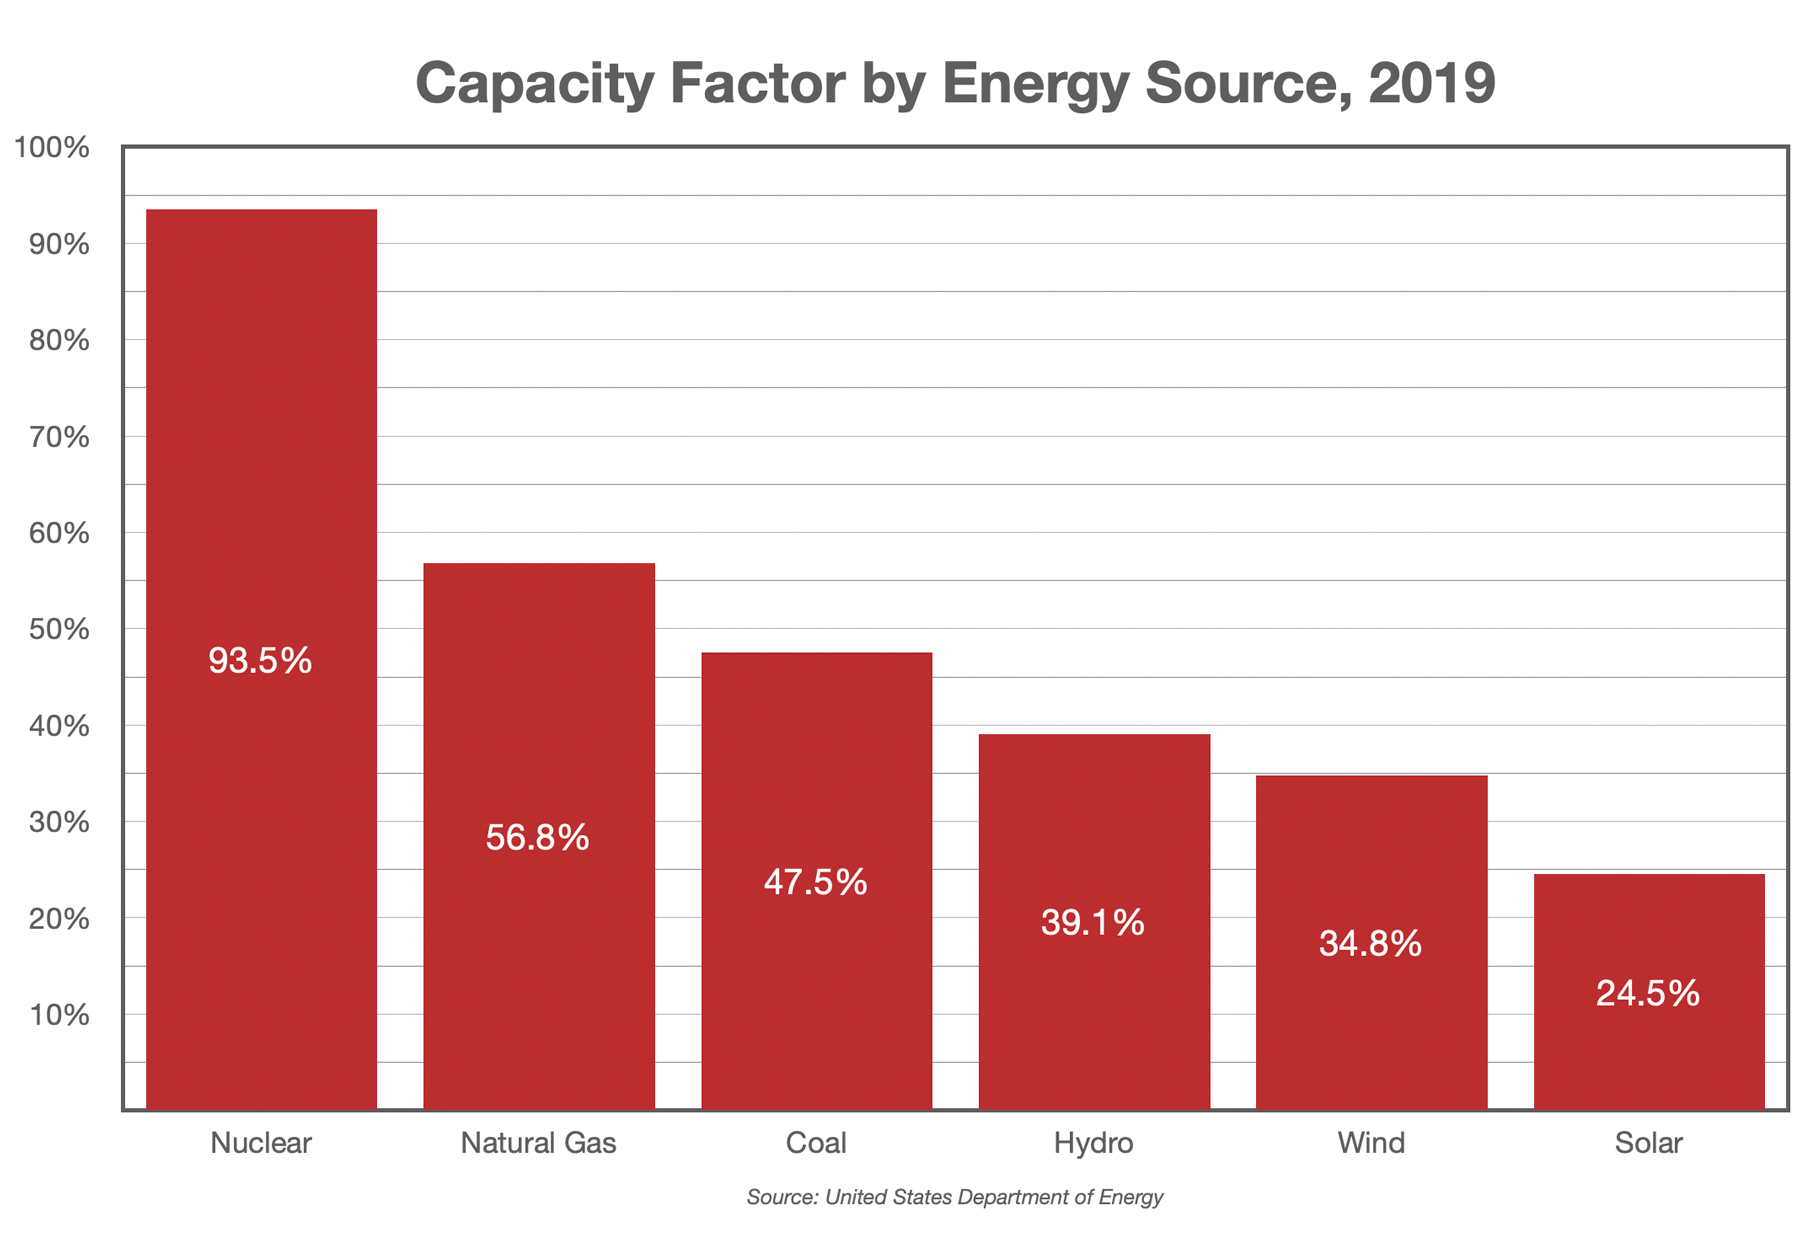 Capacity Factor by Energy Source, 2019